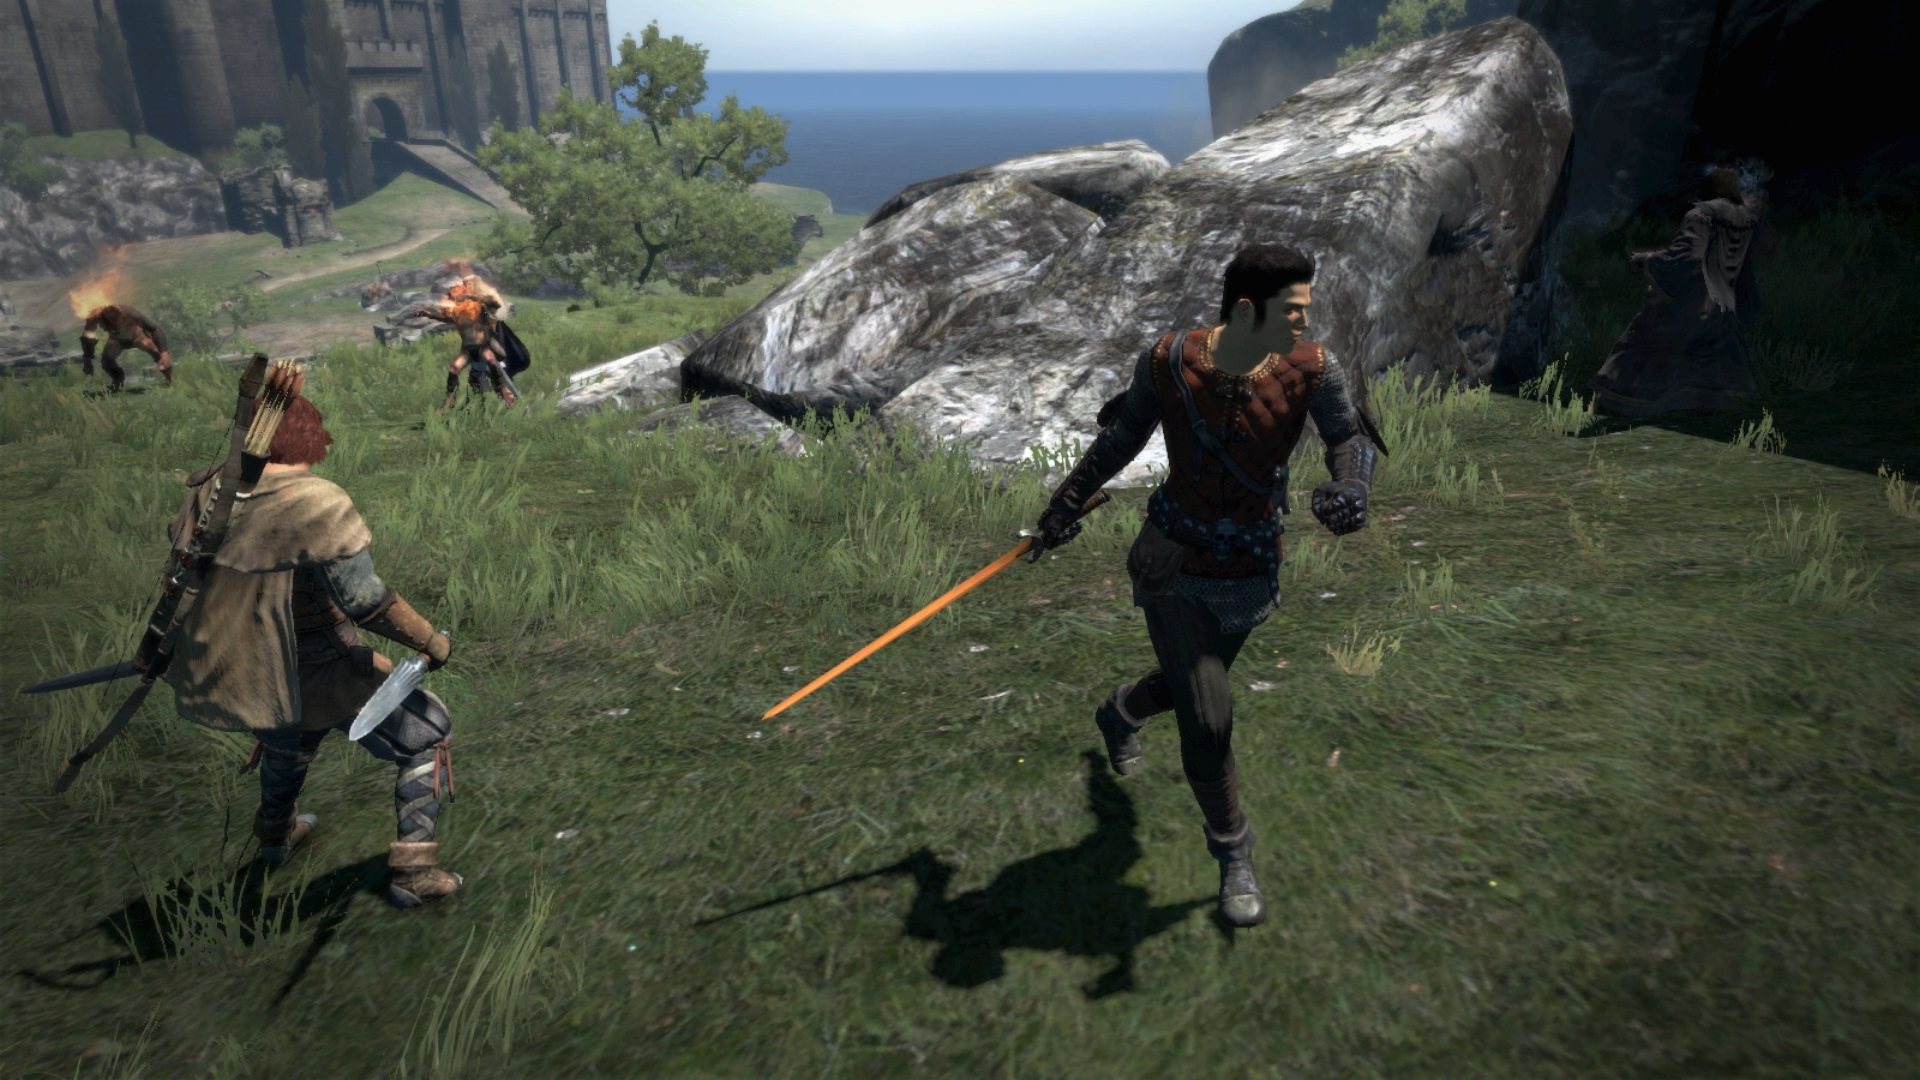 Dragon S Dogma Dark Arisen For Switch And Travis Strikes Again